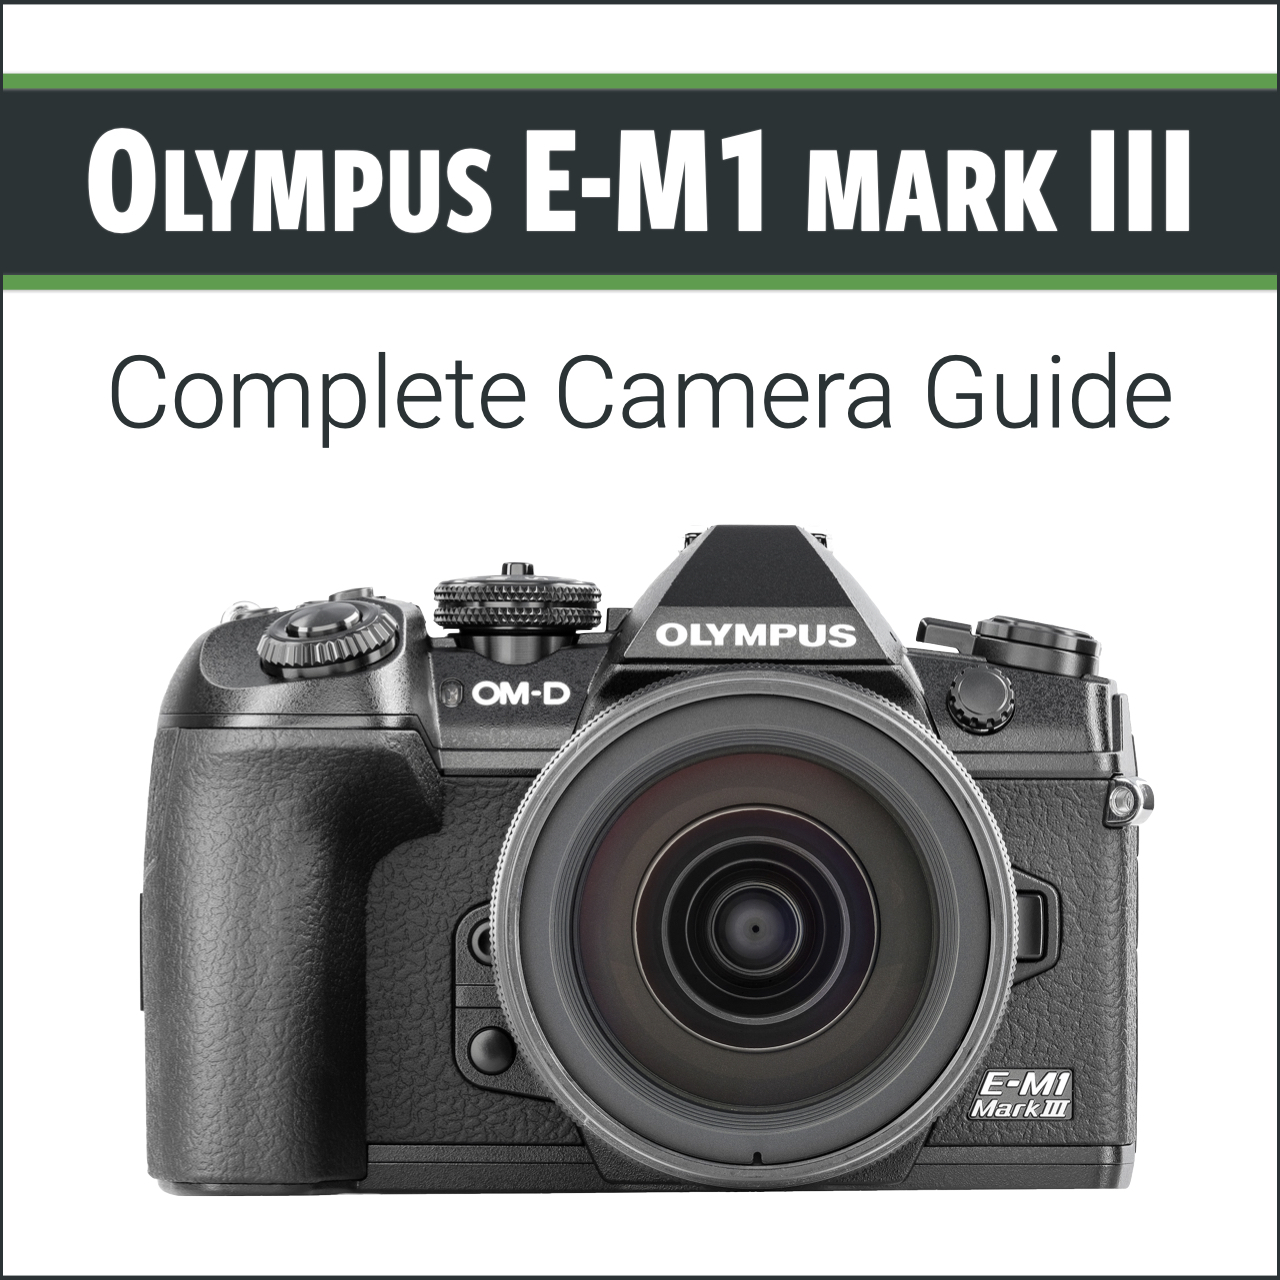 Olympus OM-D E-M1 III: Complete Camera Guide